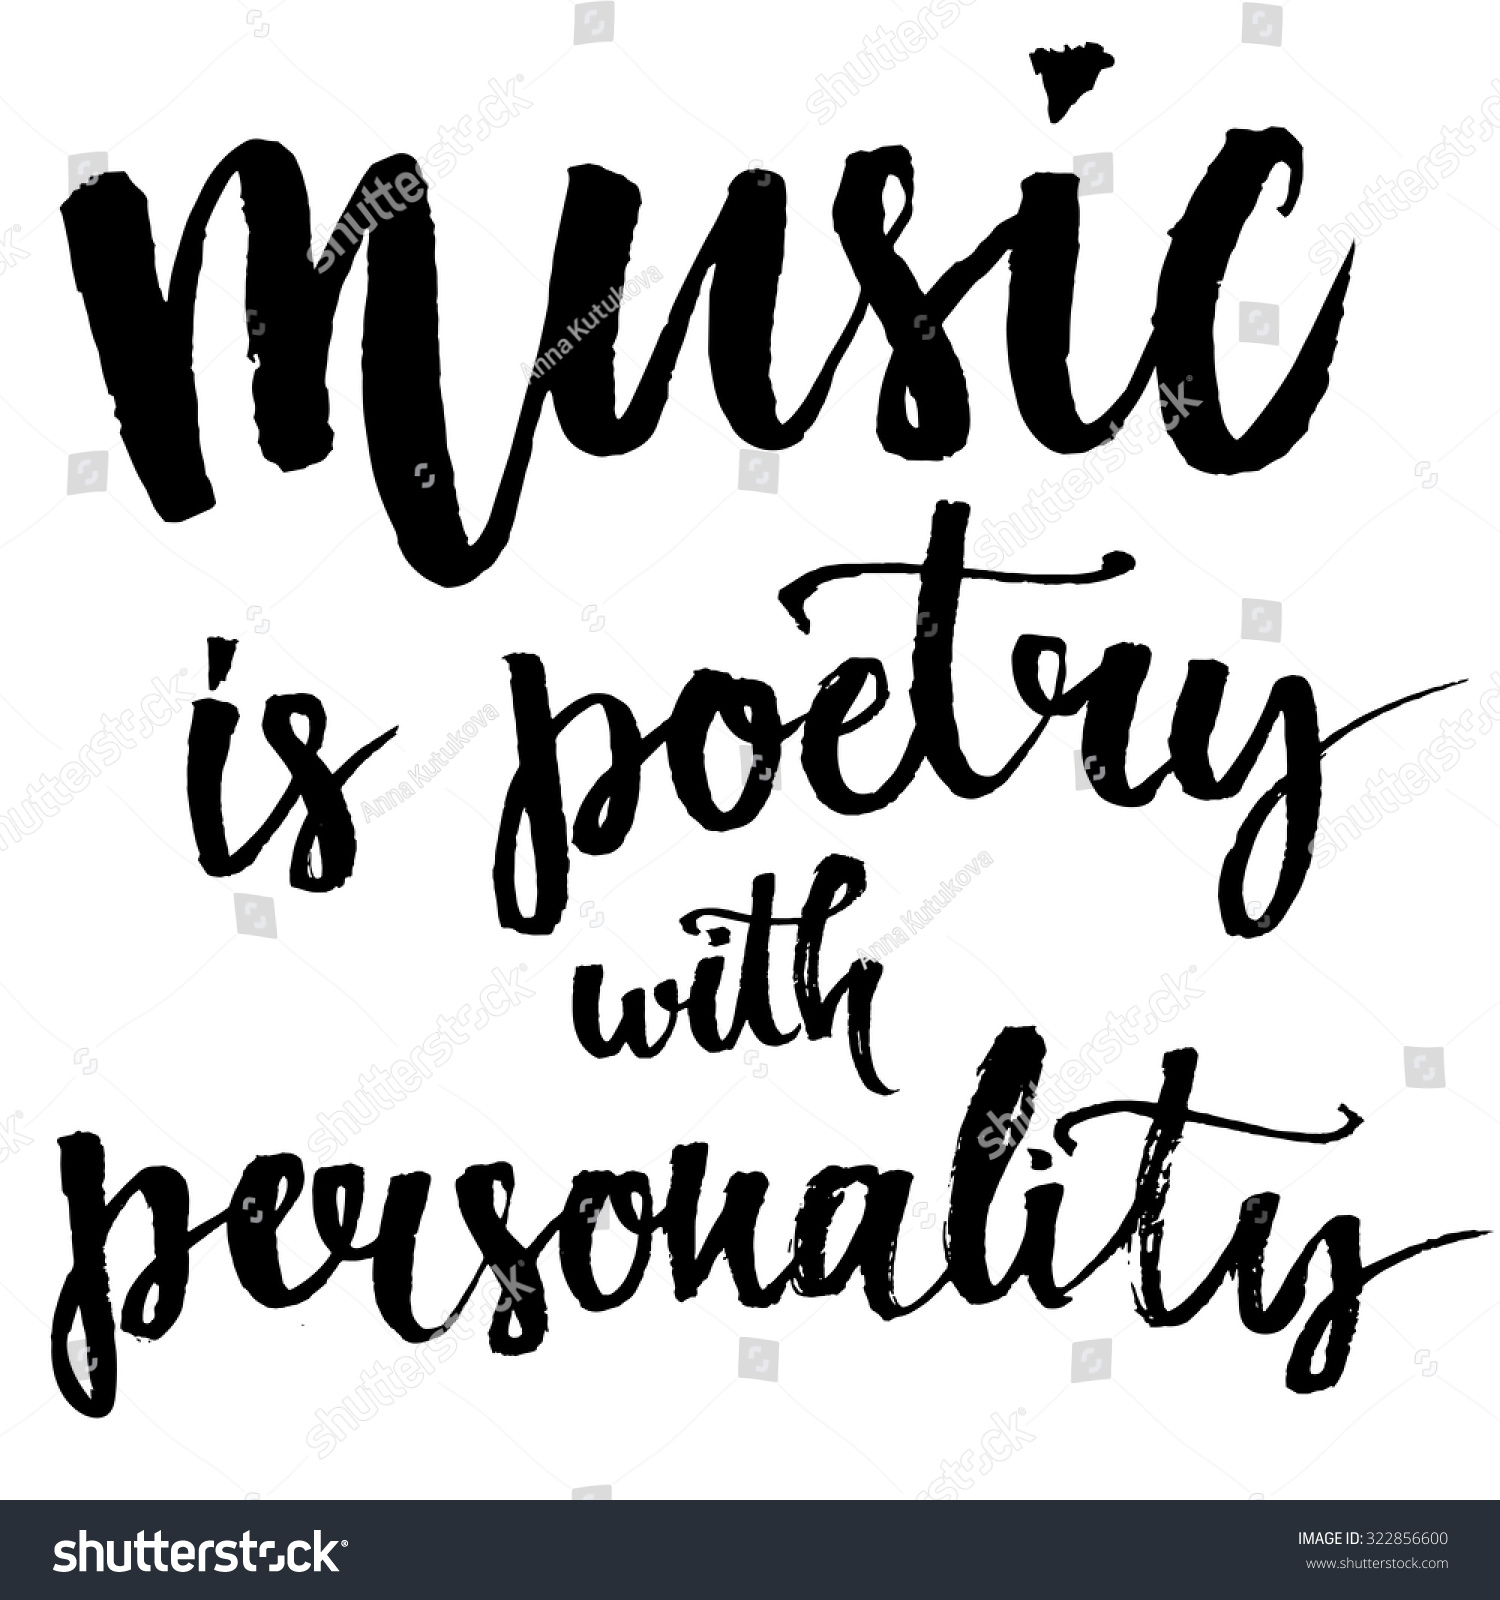 Music Is A Poetry With Personality Inspirational Quote